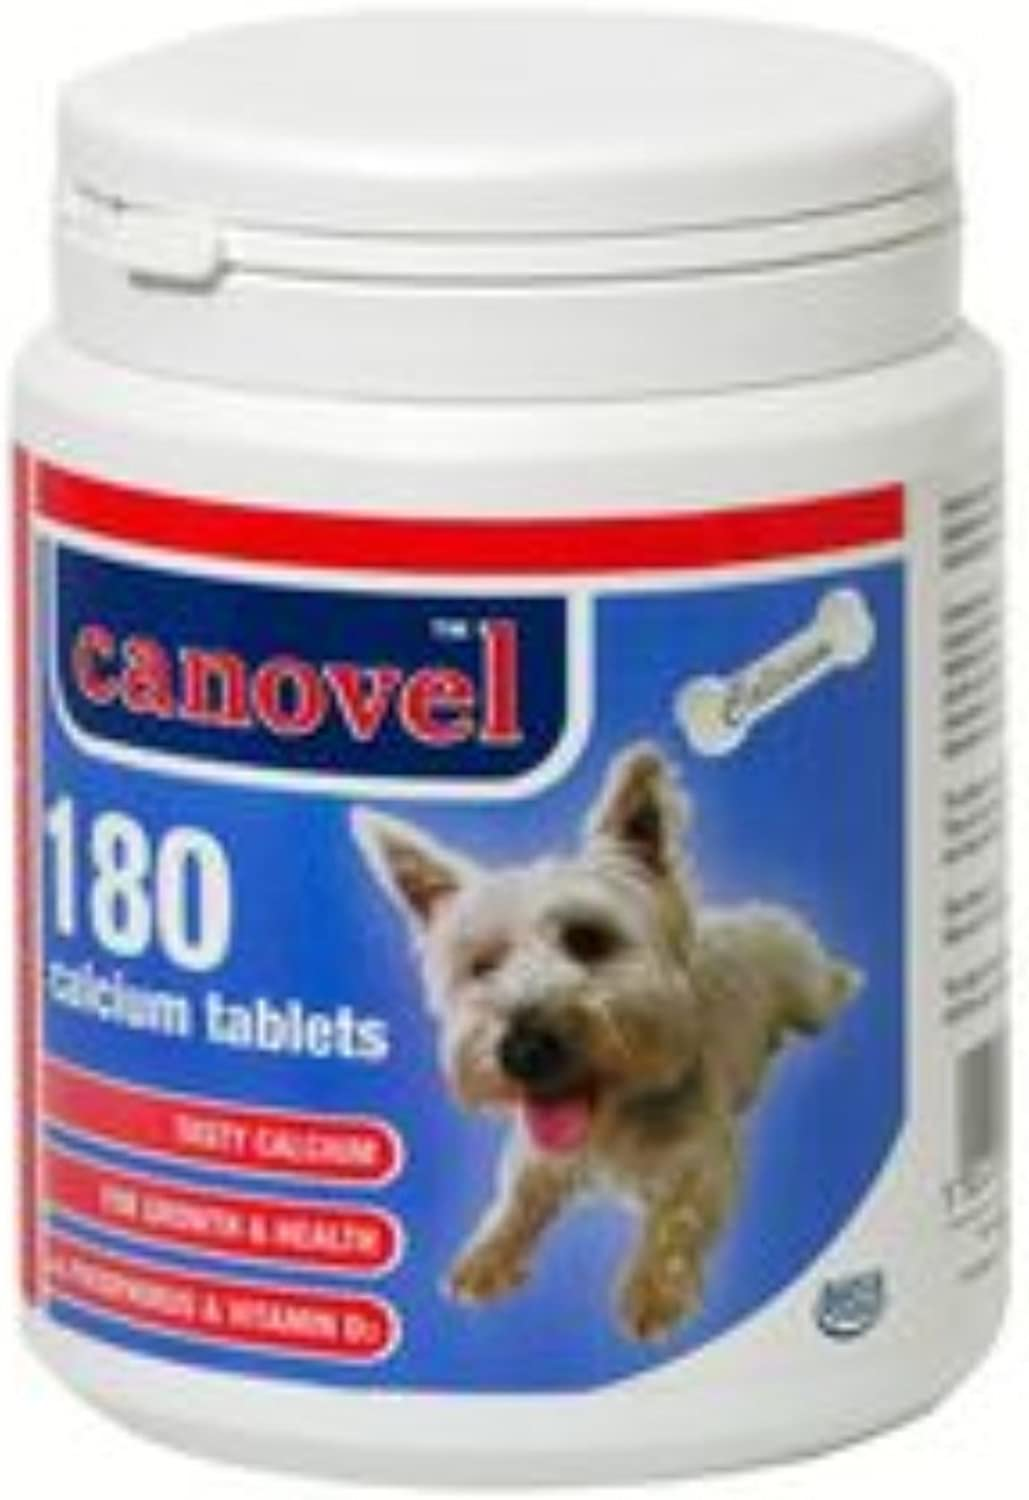 Hatchwell Canovel Dog & Cat Calcium 180 Tablets